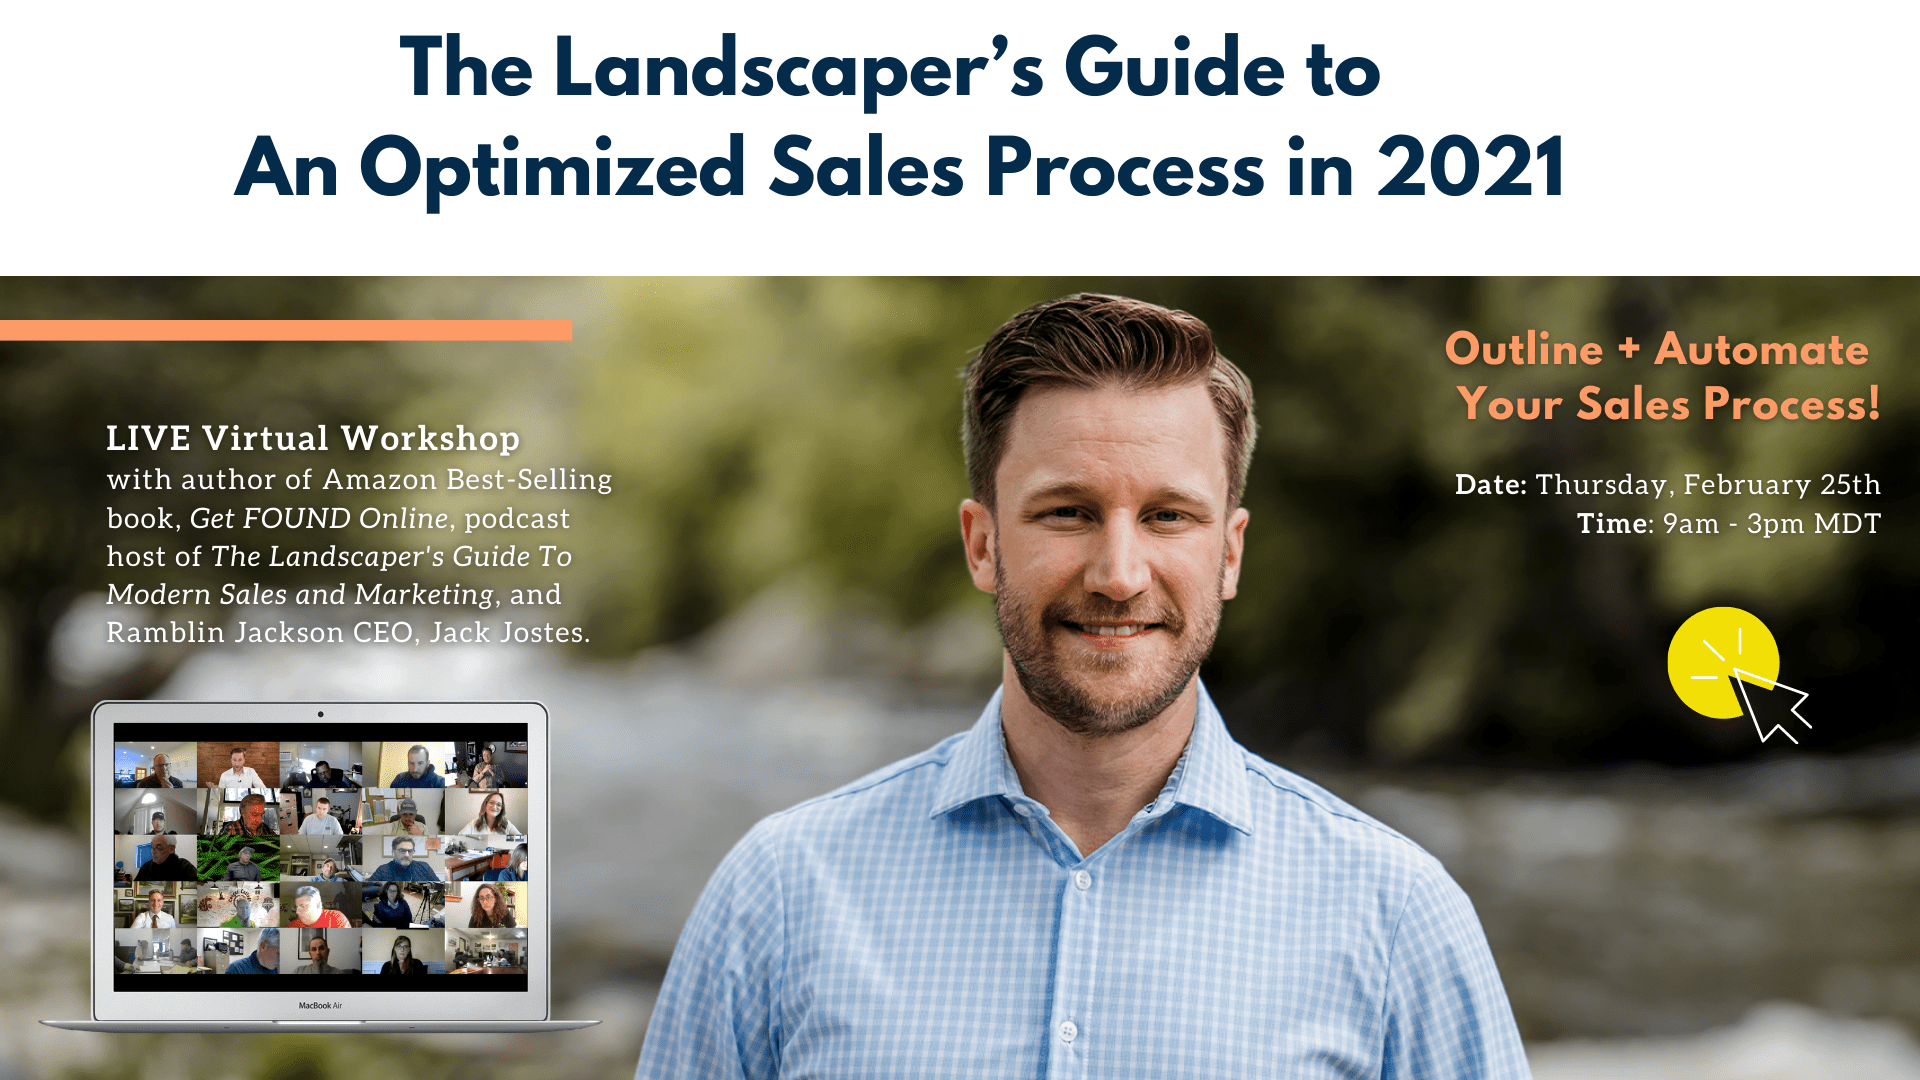 The Landscaper's Guide to An Optimized Sales Process in 2021